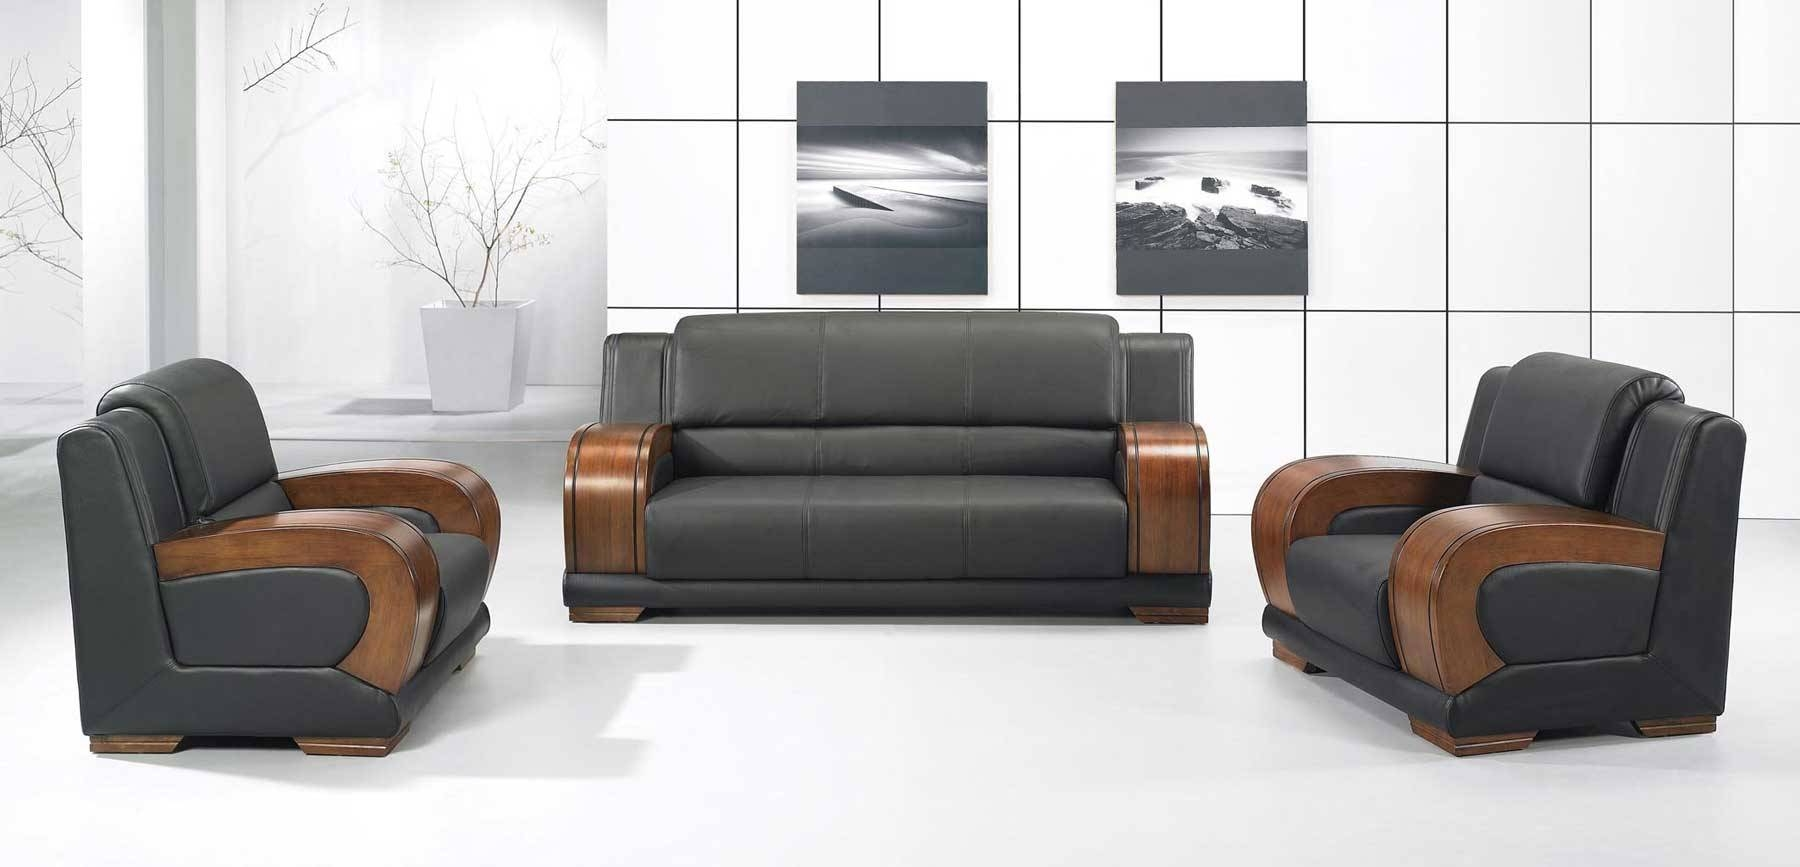 Amazing Modern Office Sofa With China Office Sofa S China Modern inside Office Sofa Chairs (Image 2 of 30)